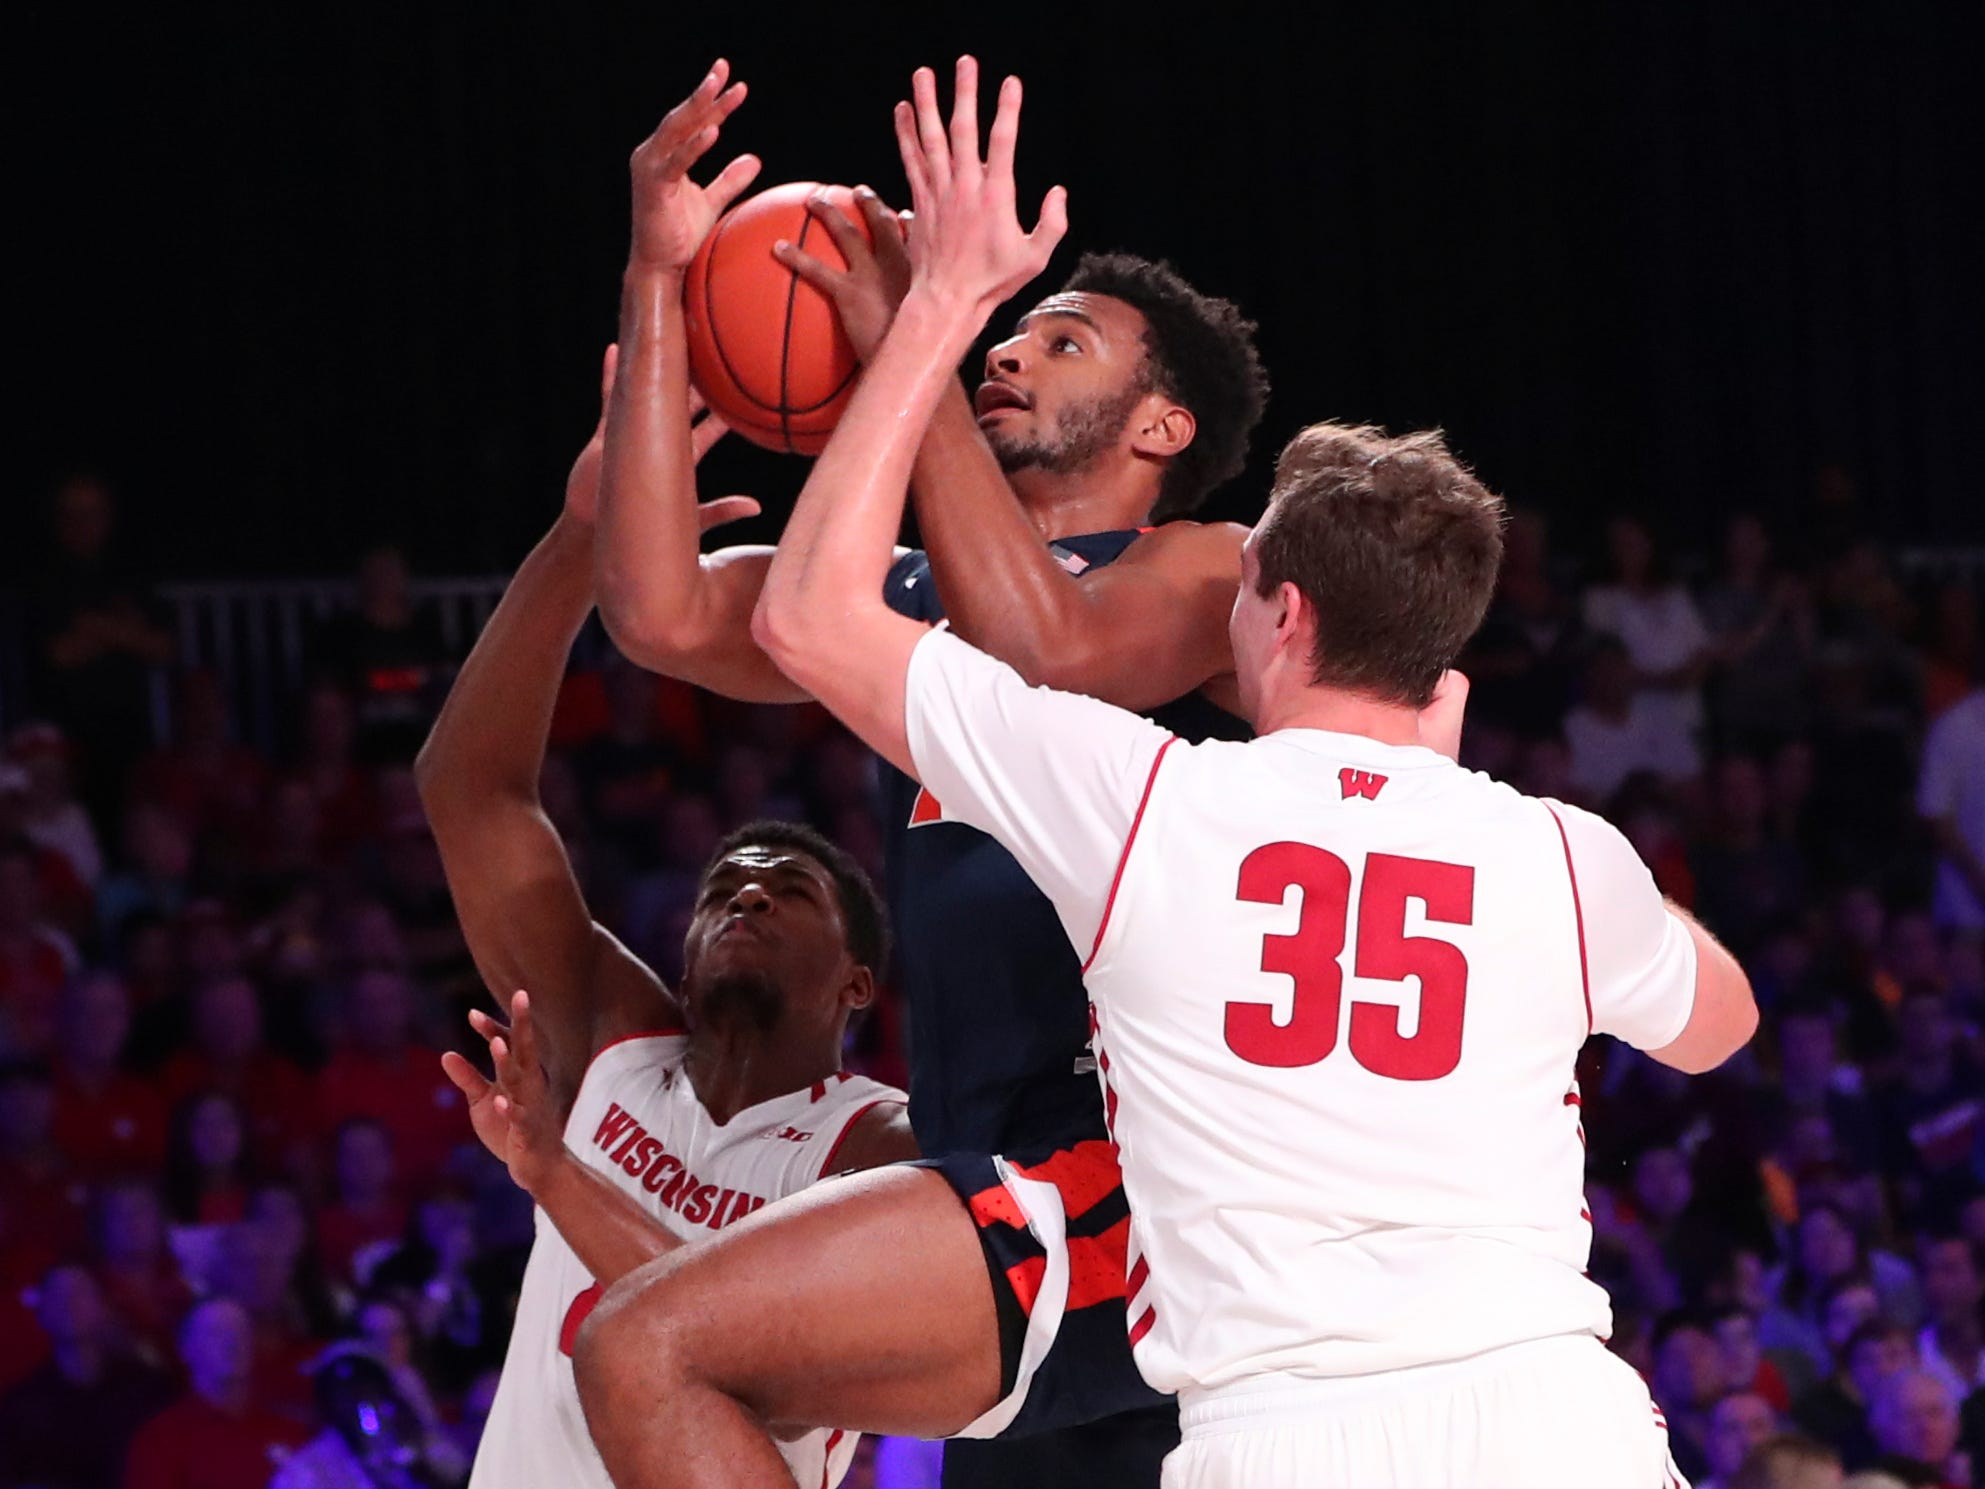 Virginia Cavaliers guard Braxton Key gets past Wisconsin's Nate Reuvers.